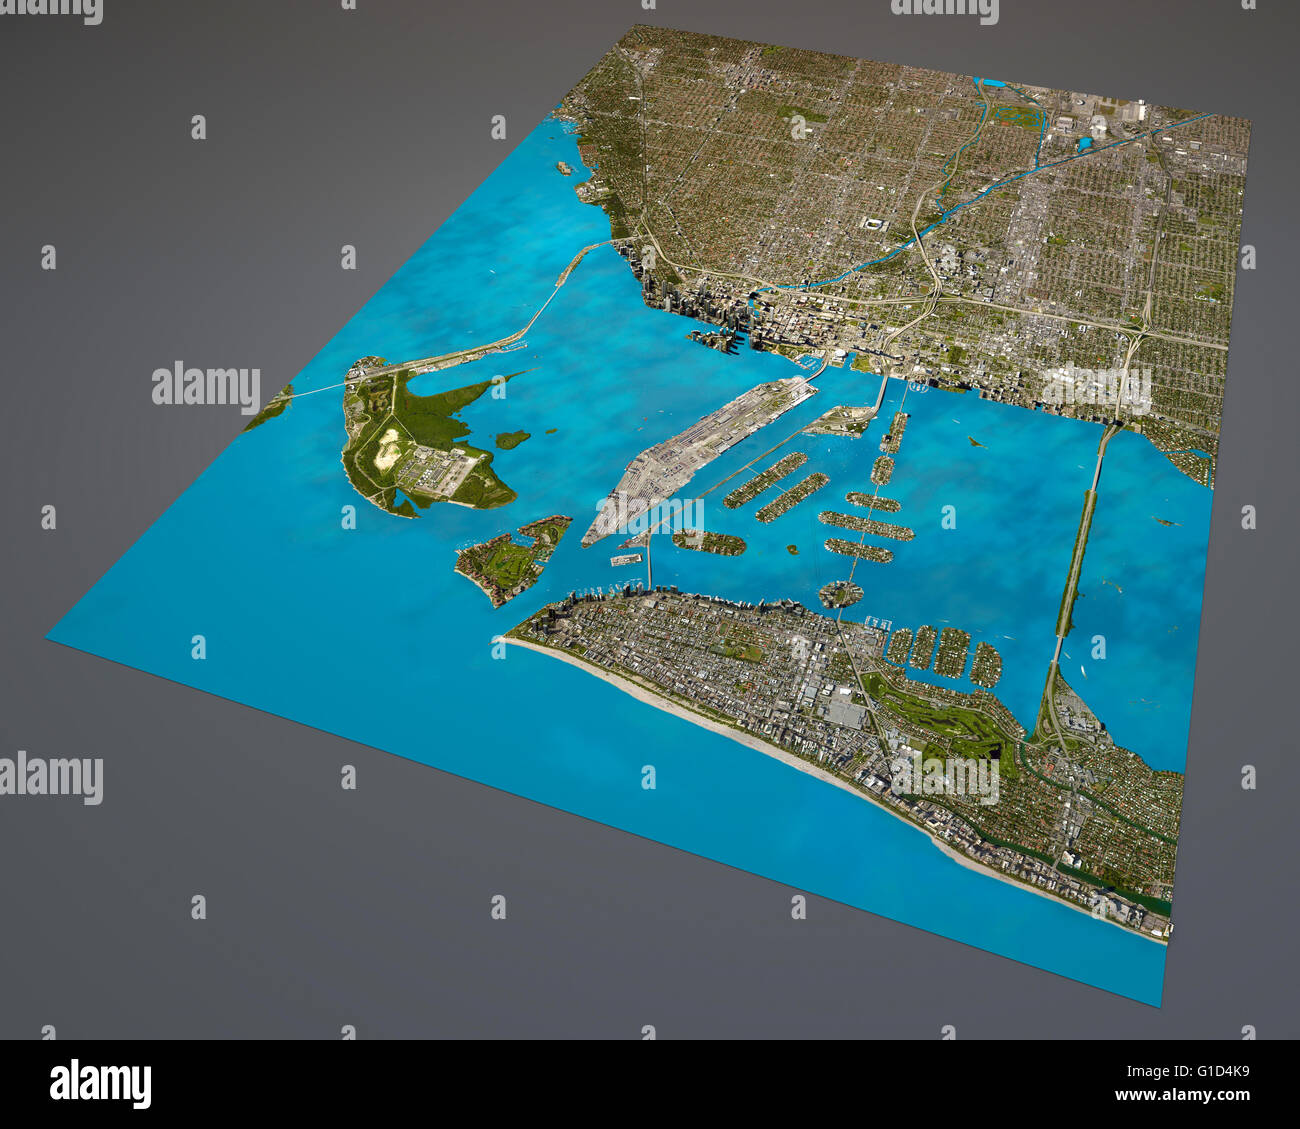 United States Map Satellite.Miami Map Satellite View Aerial View Florida United States Of